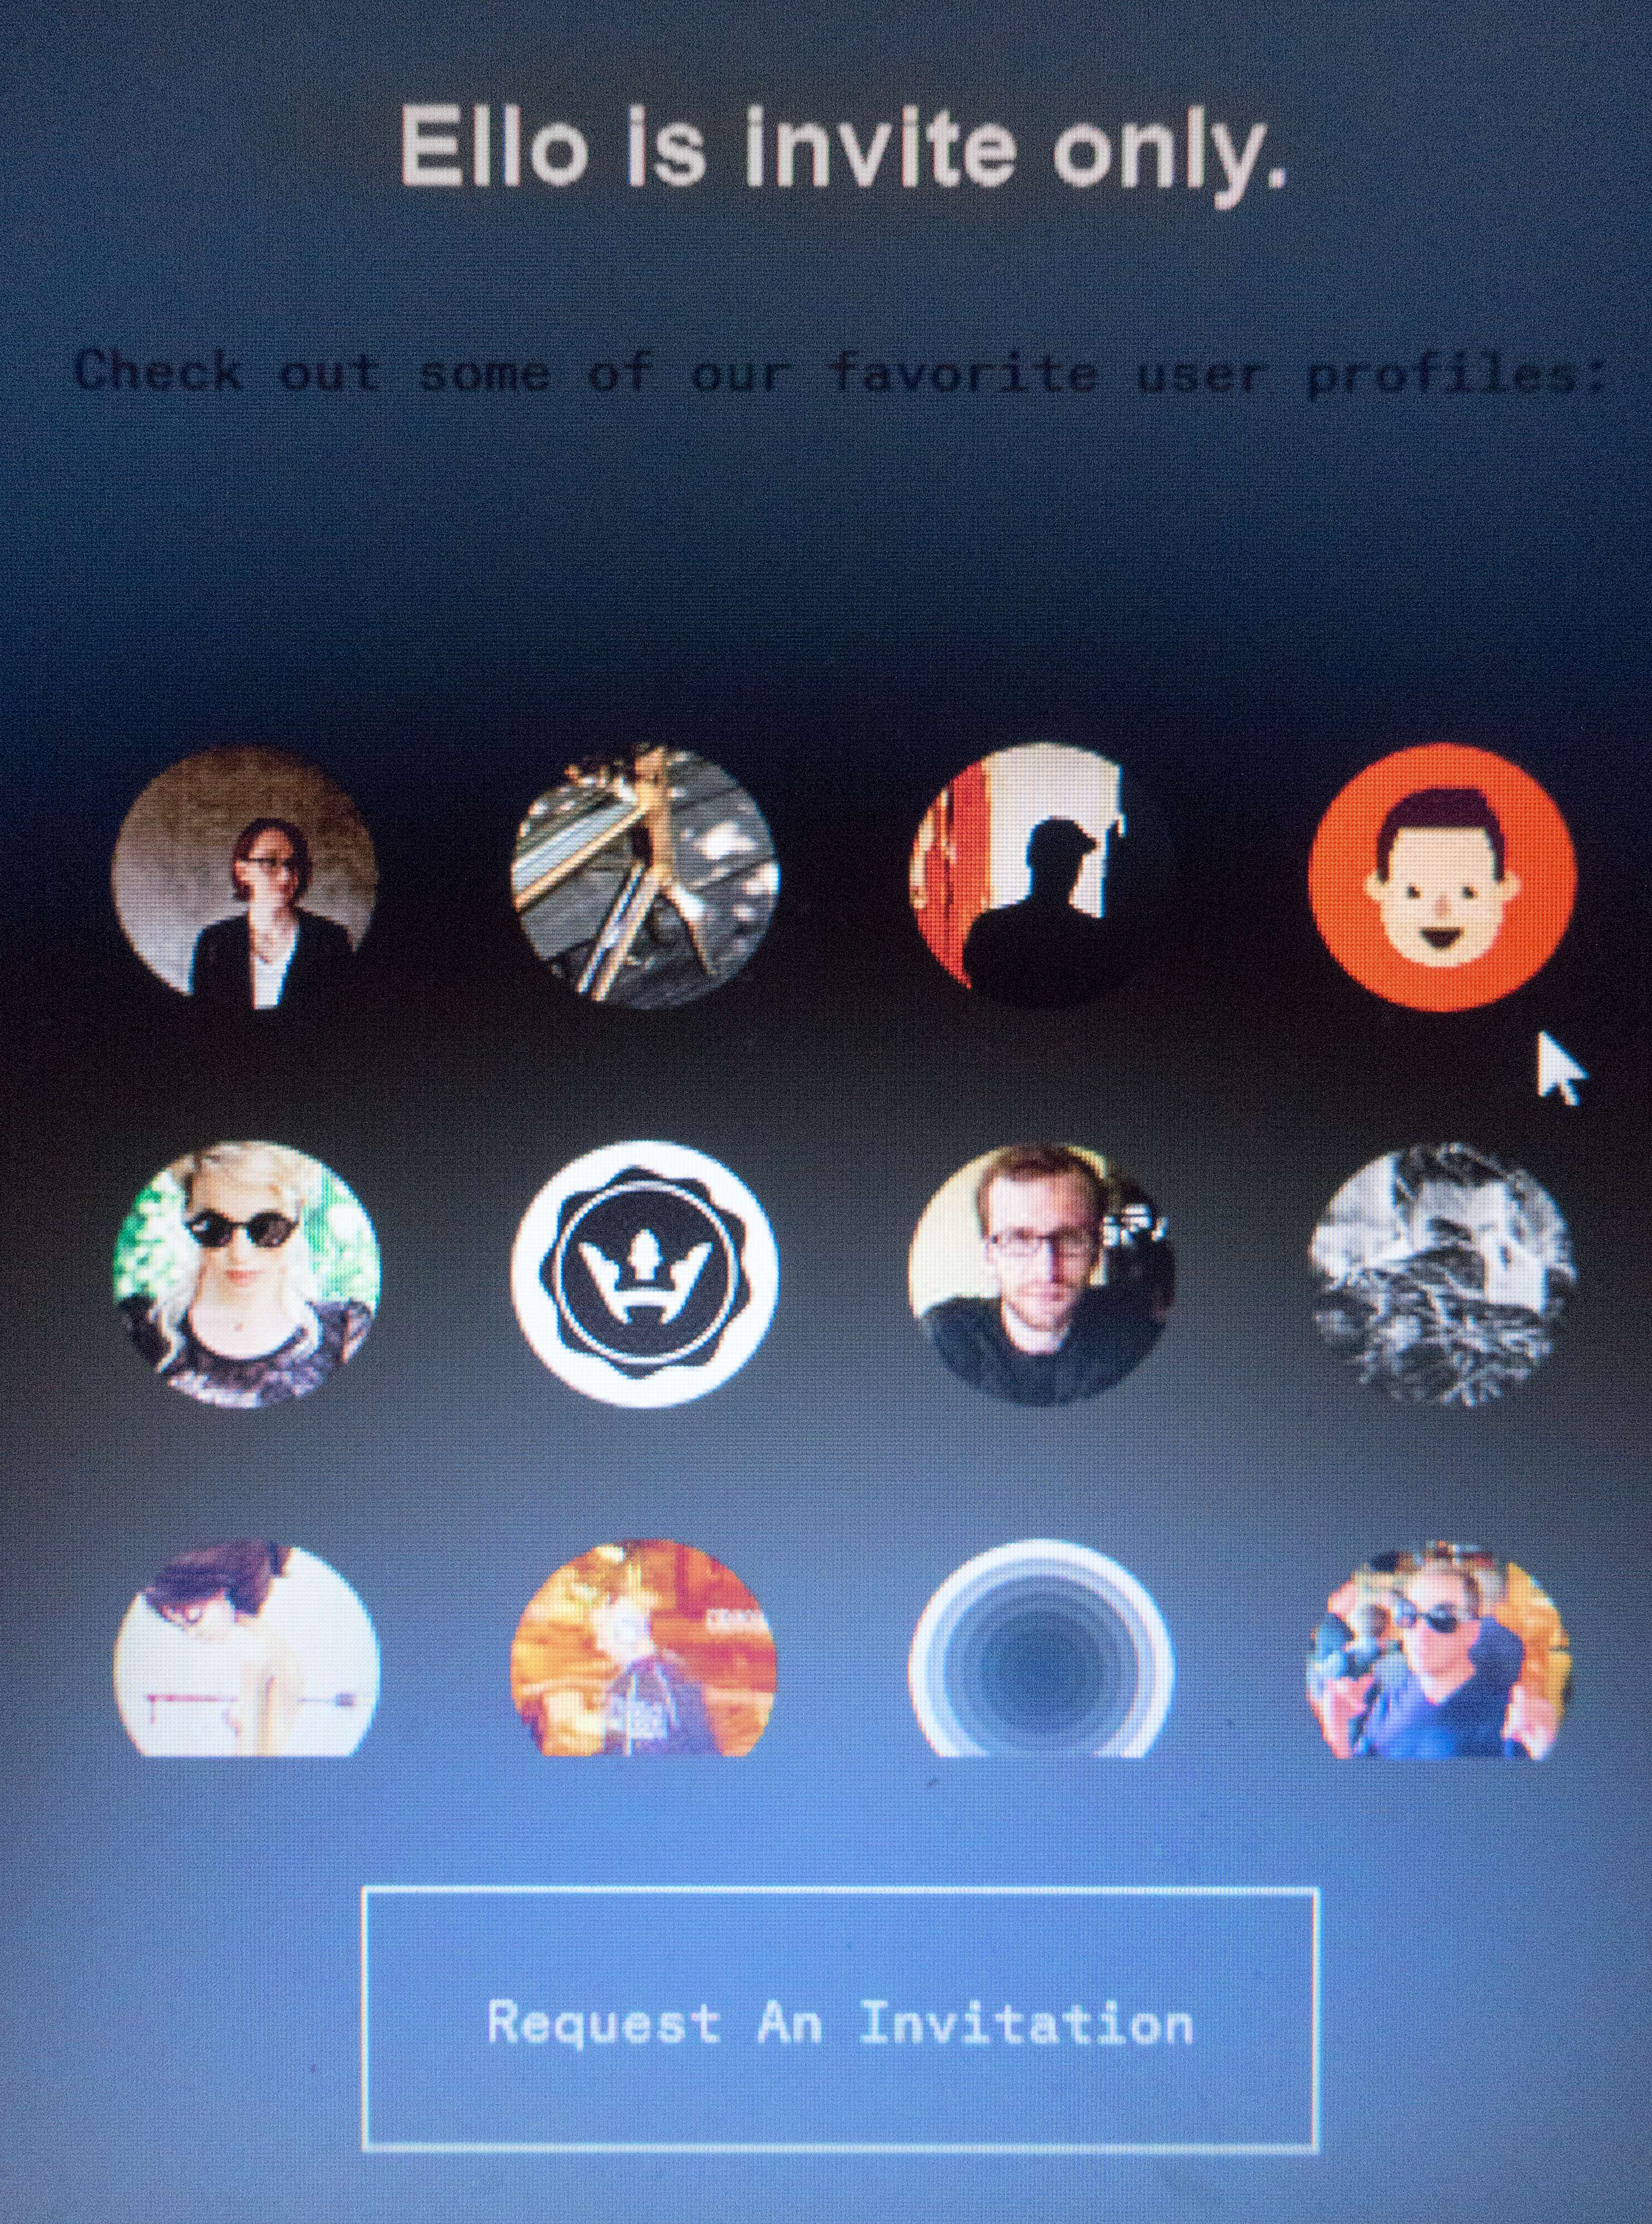 A screenshot of Ello, from 2014.